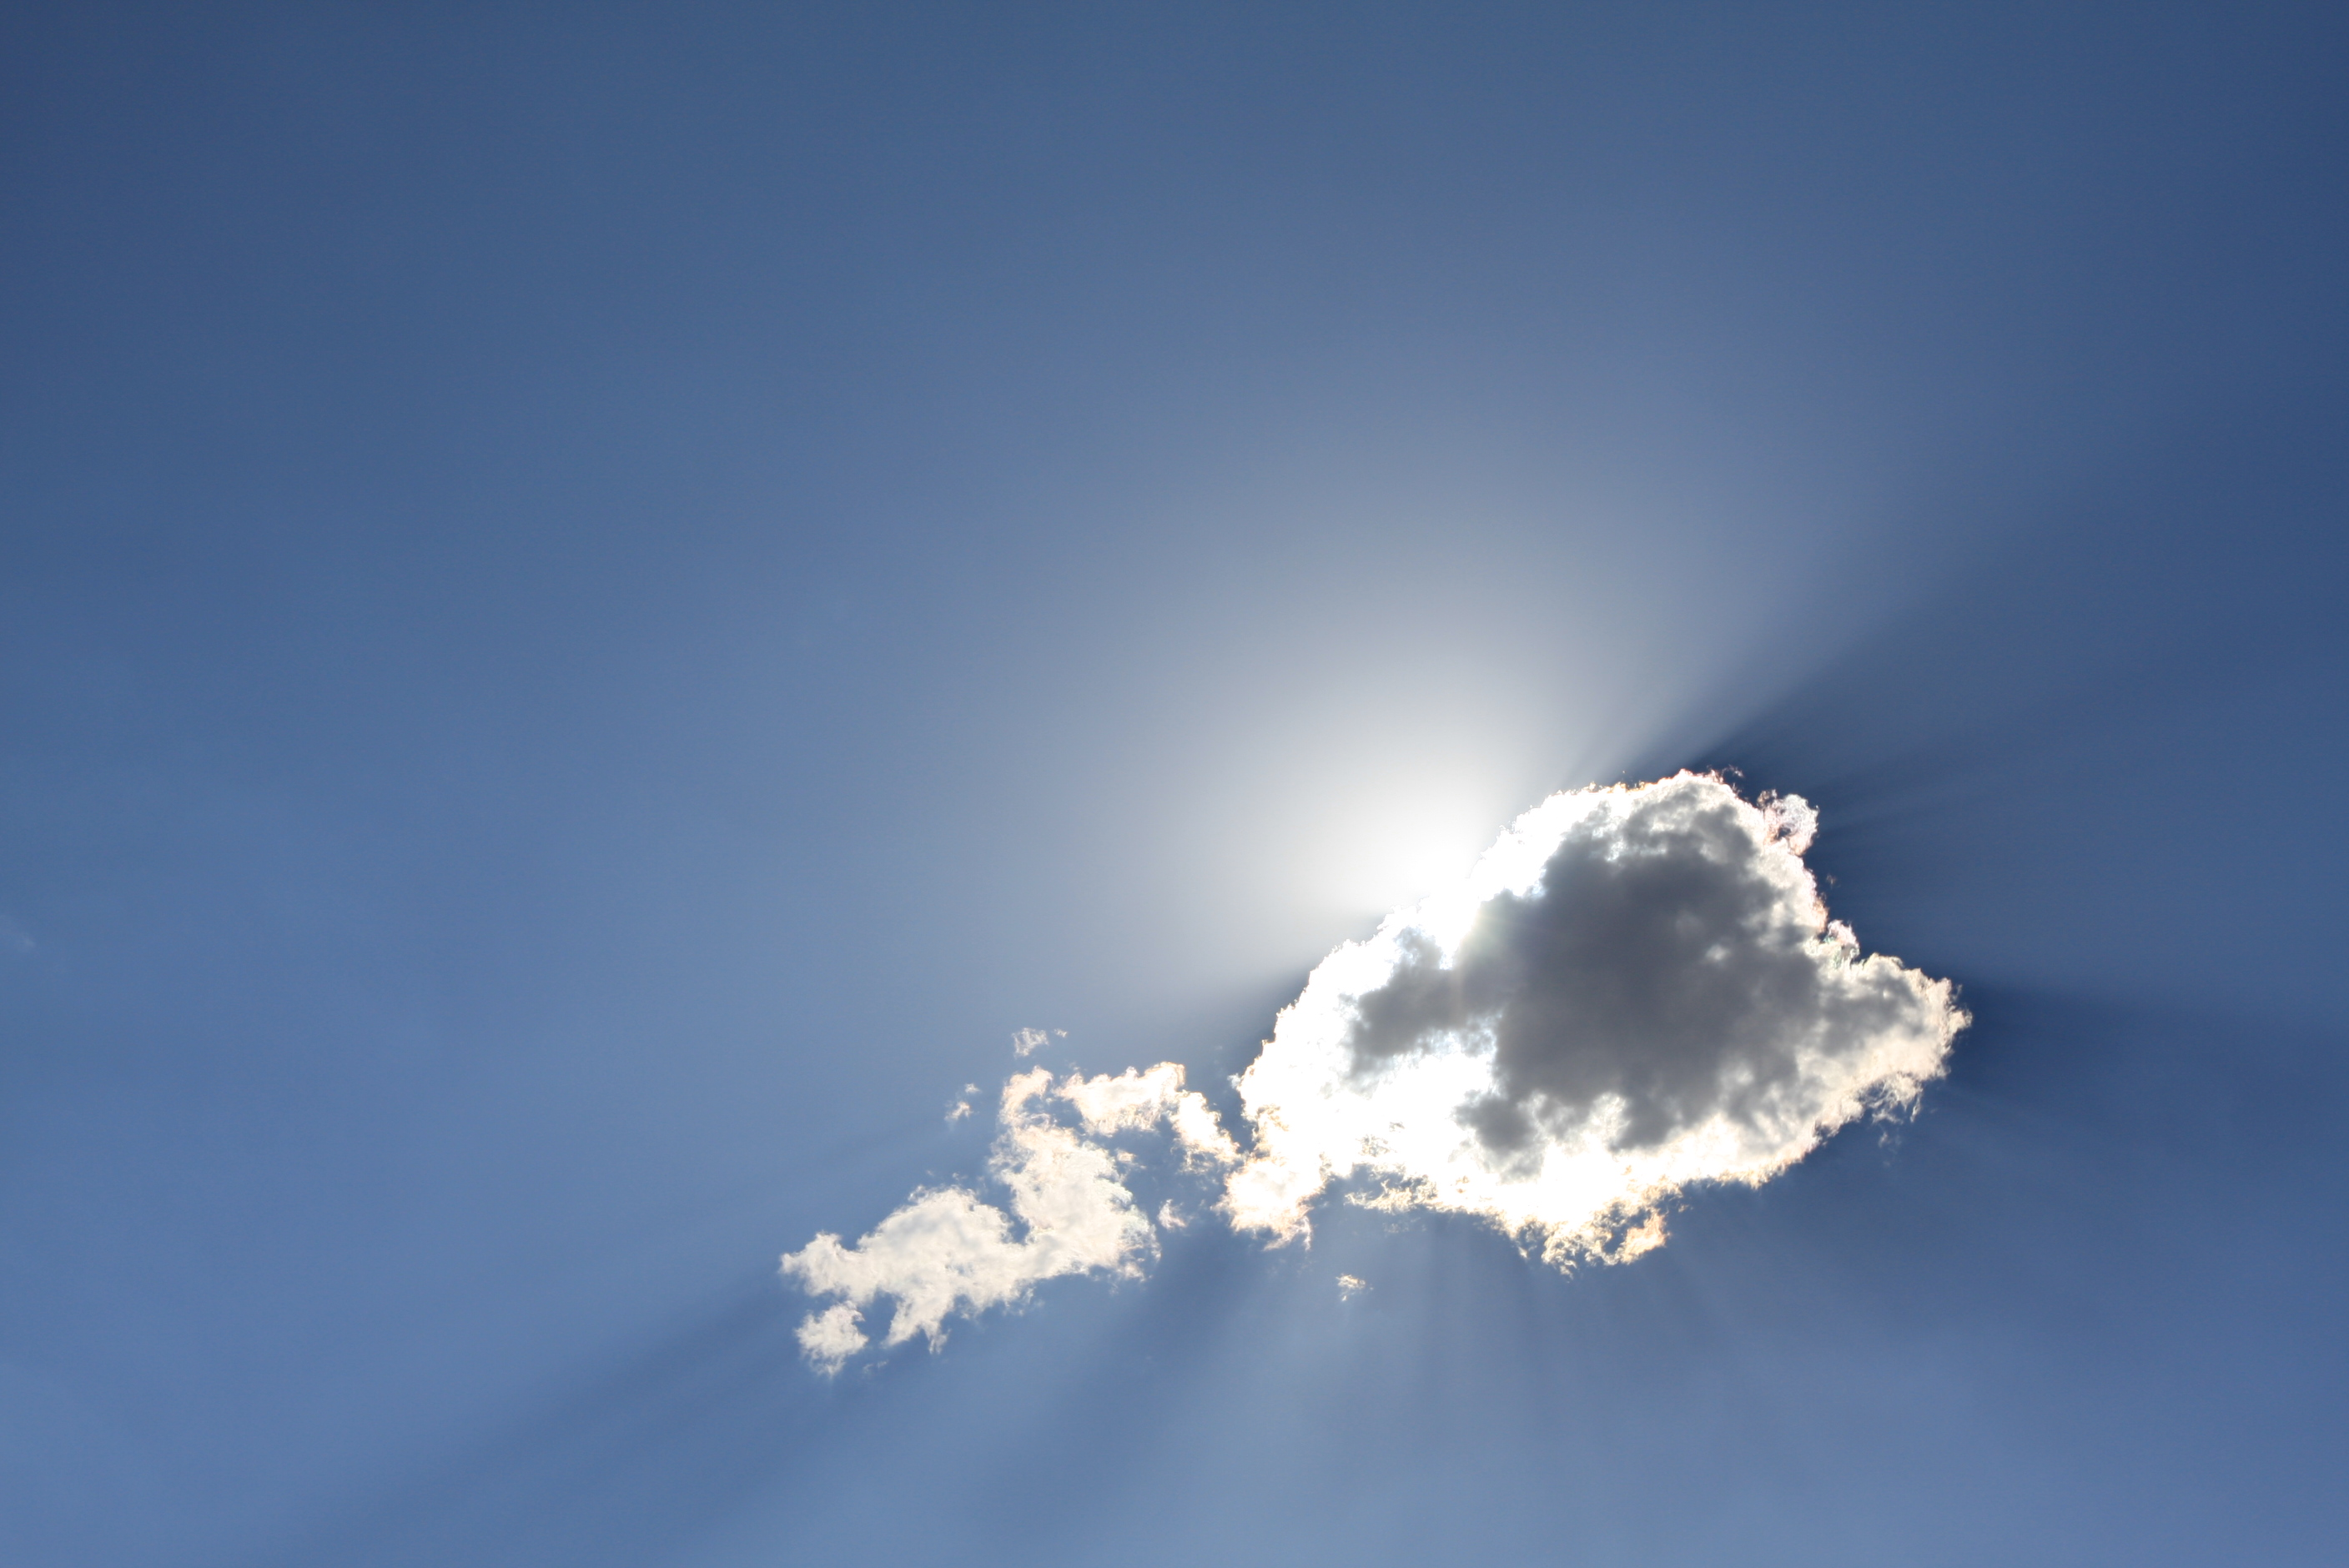 Business Growth Plan: Prepare for the cloud